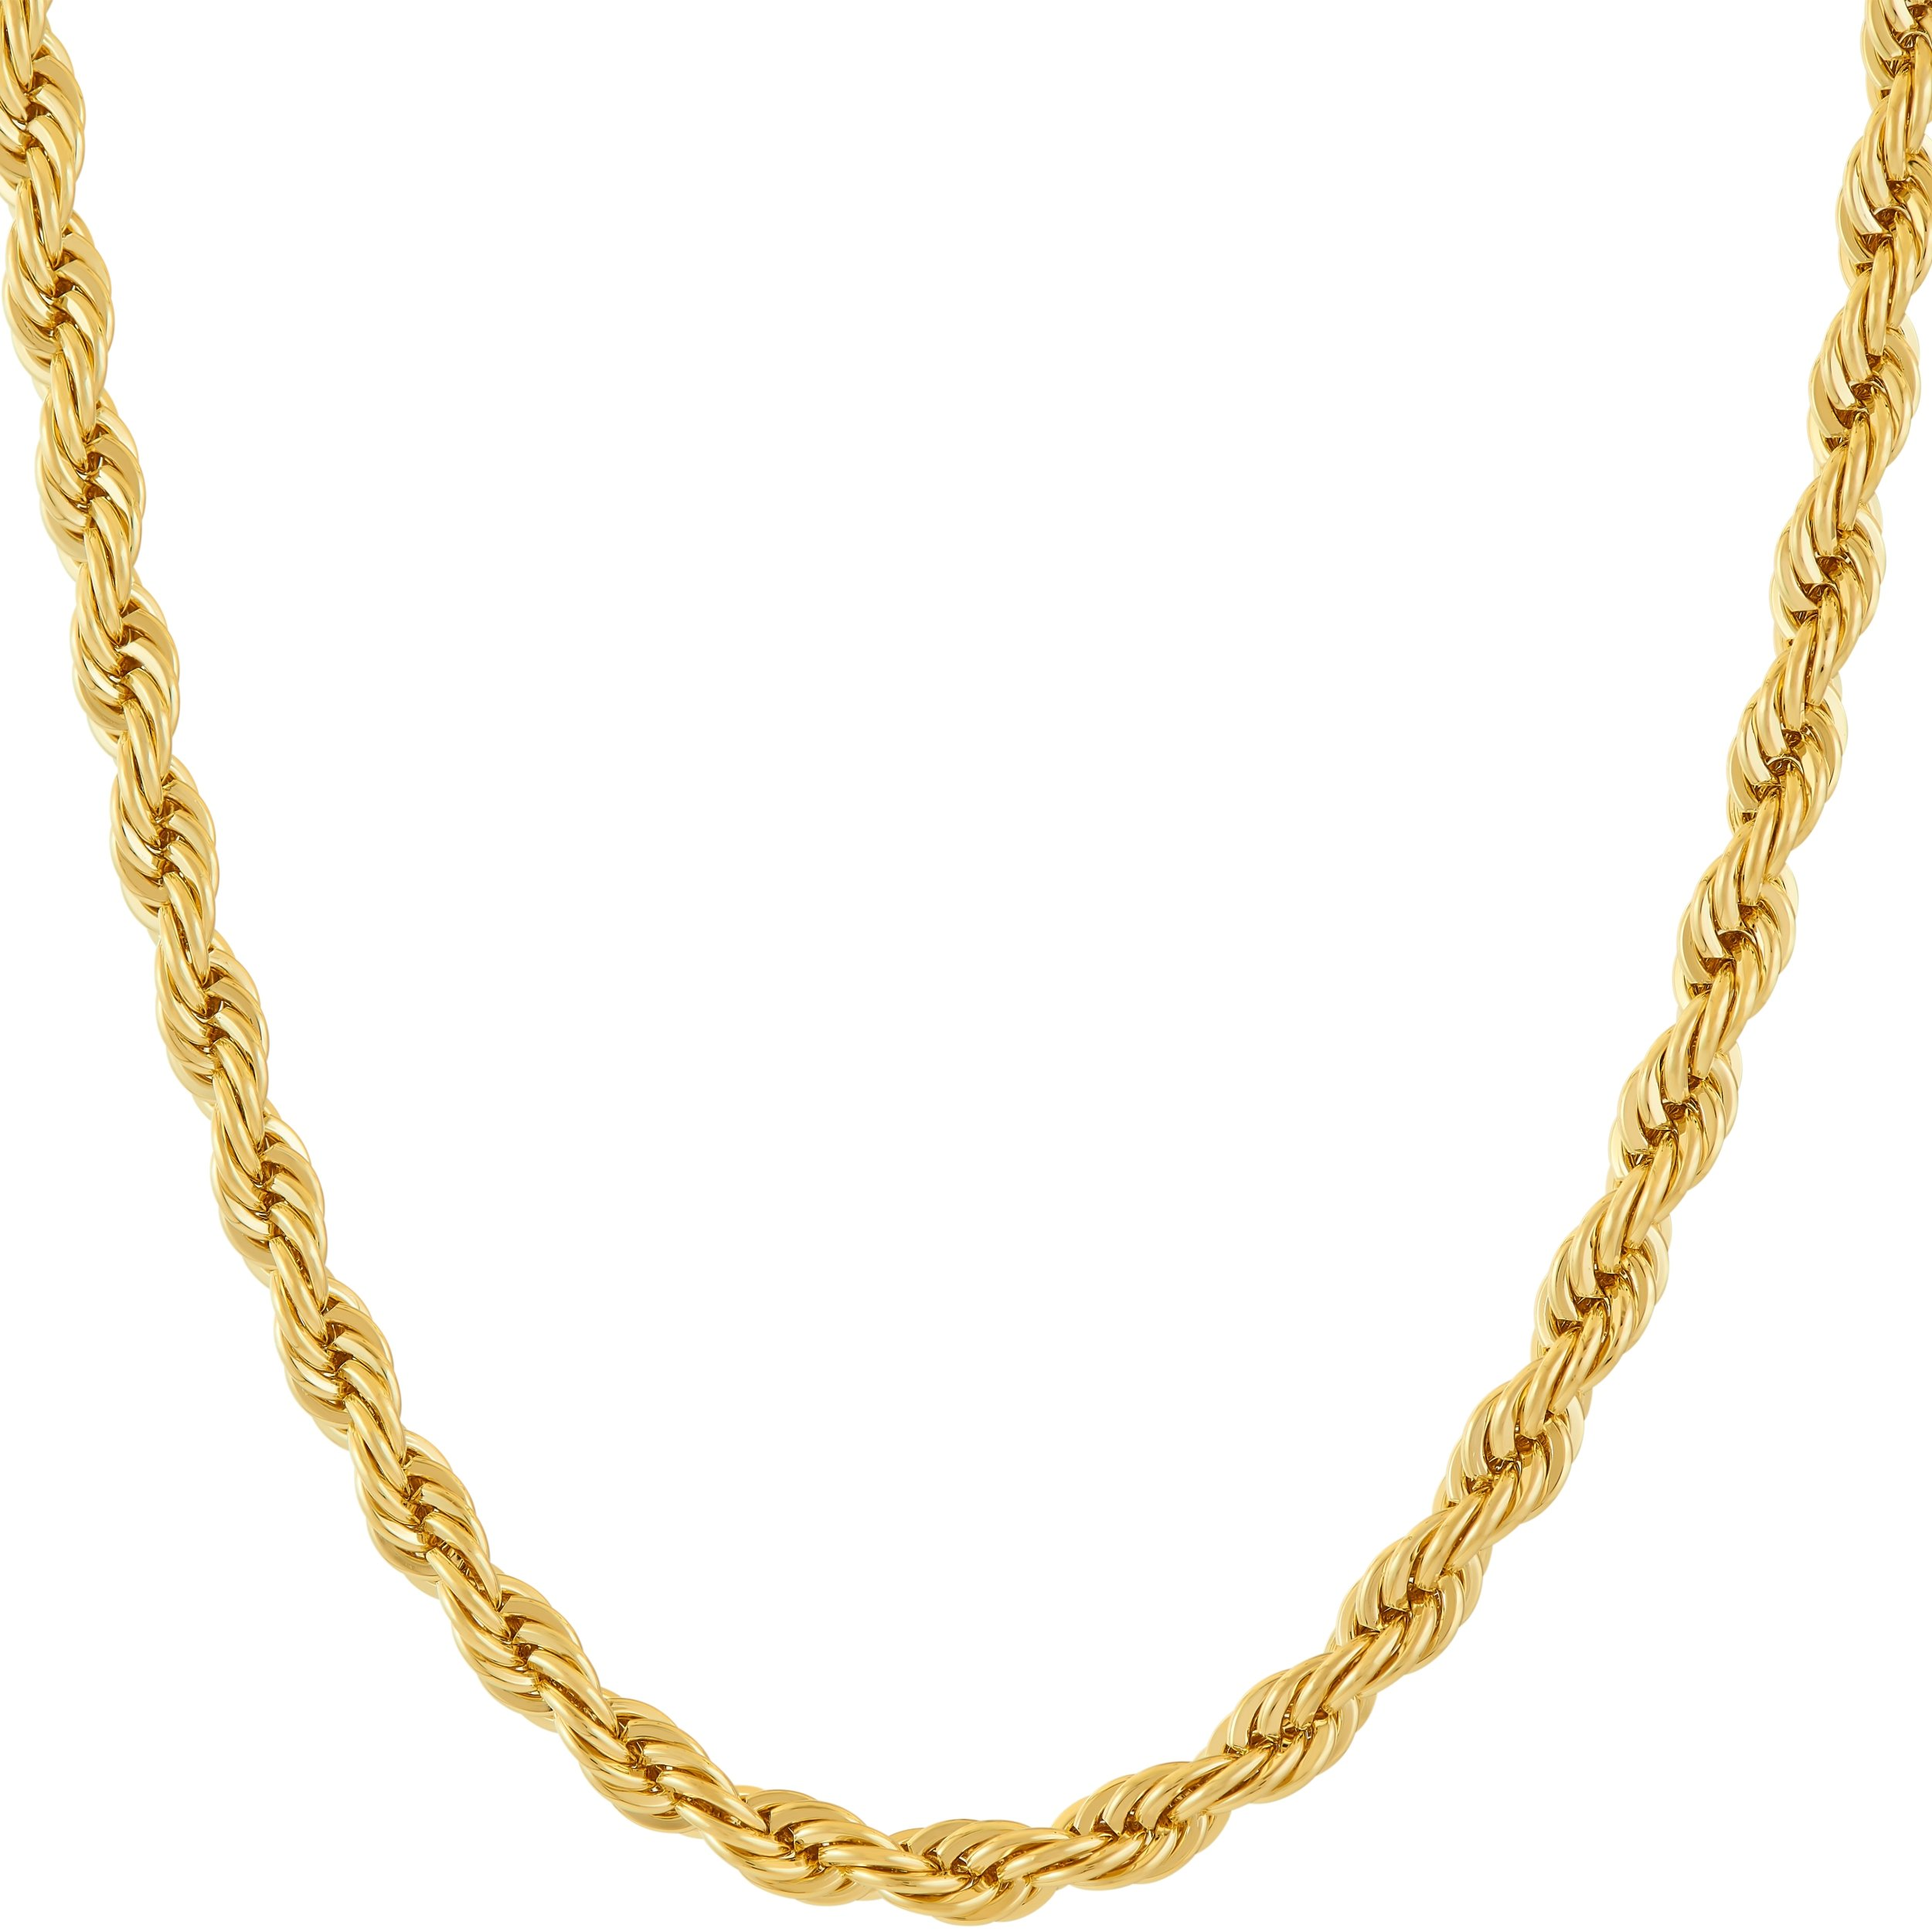 Lifetime Jewelry 5MM Rope Chain, 24K Gold with Inlaid Bronze Premium Fashion Jewelry Pendant Necklace Made to Wear Alone or with Pendants, Guaranteed for Life, 20 Inches